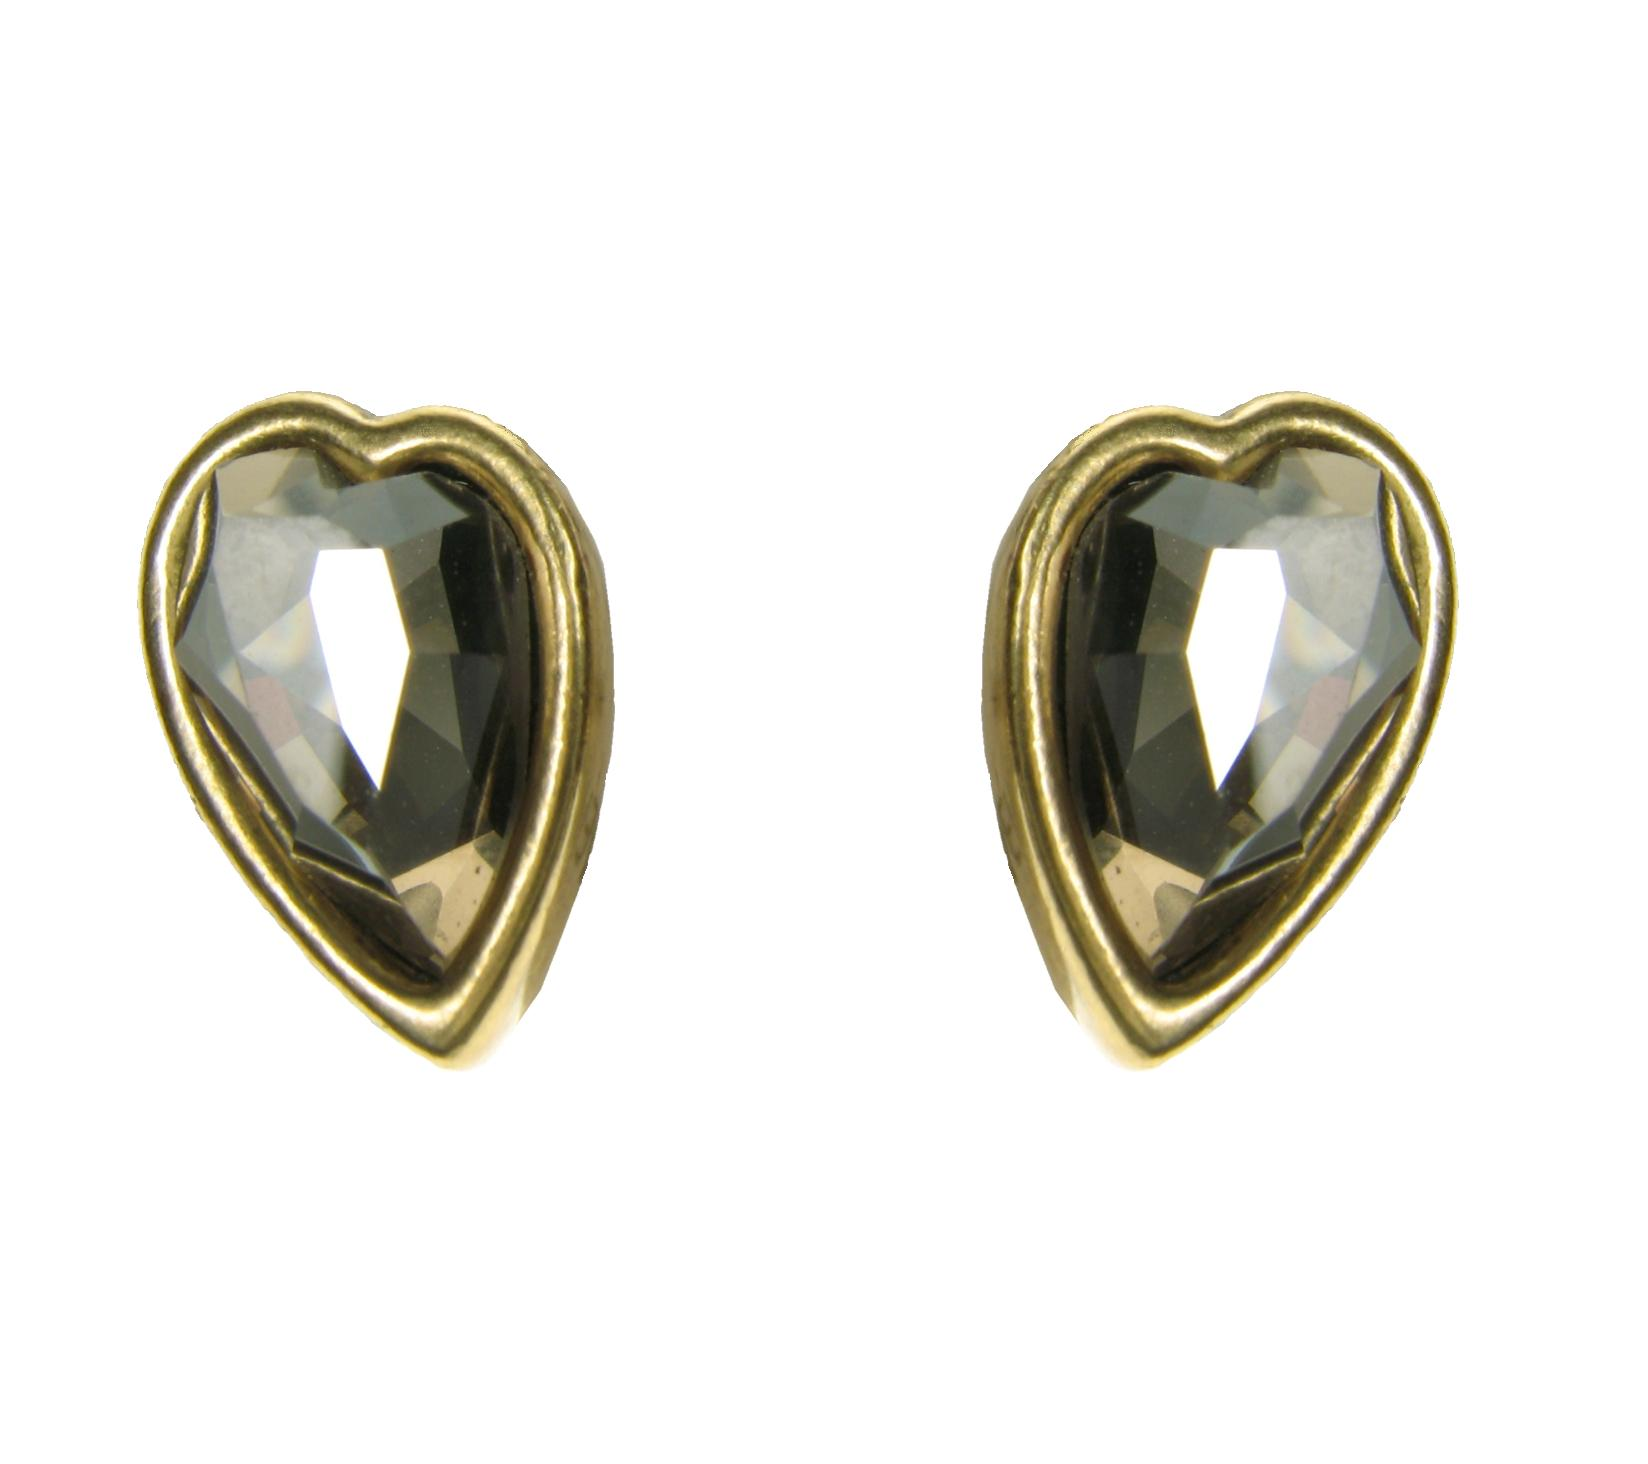 A & C - Gold Faceted Crystal Heart Stud Earrings